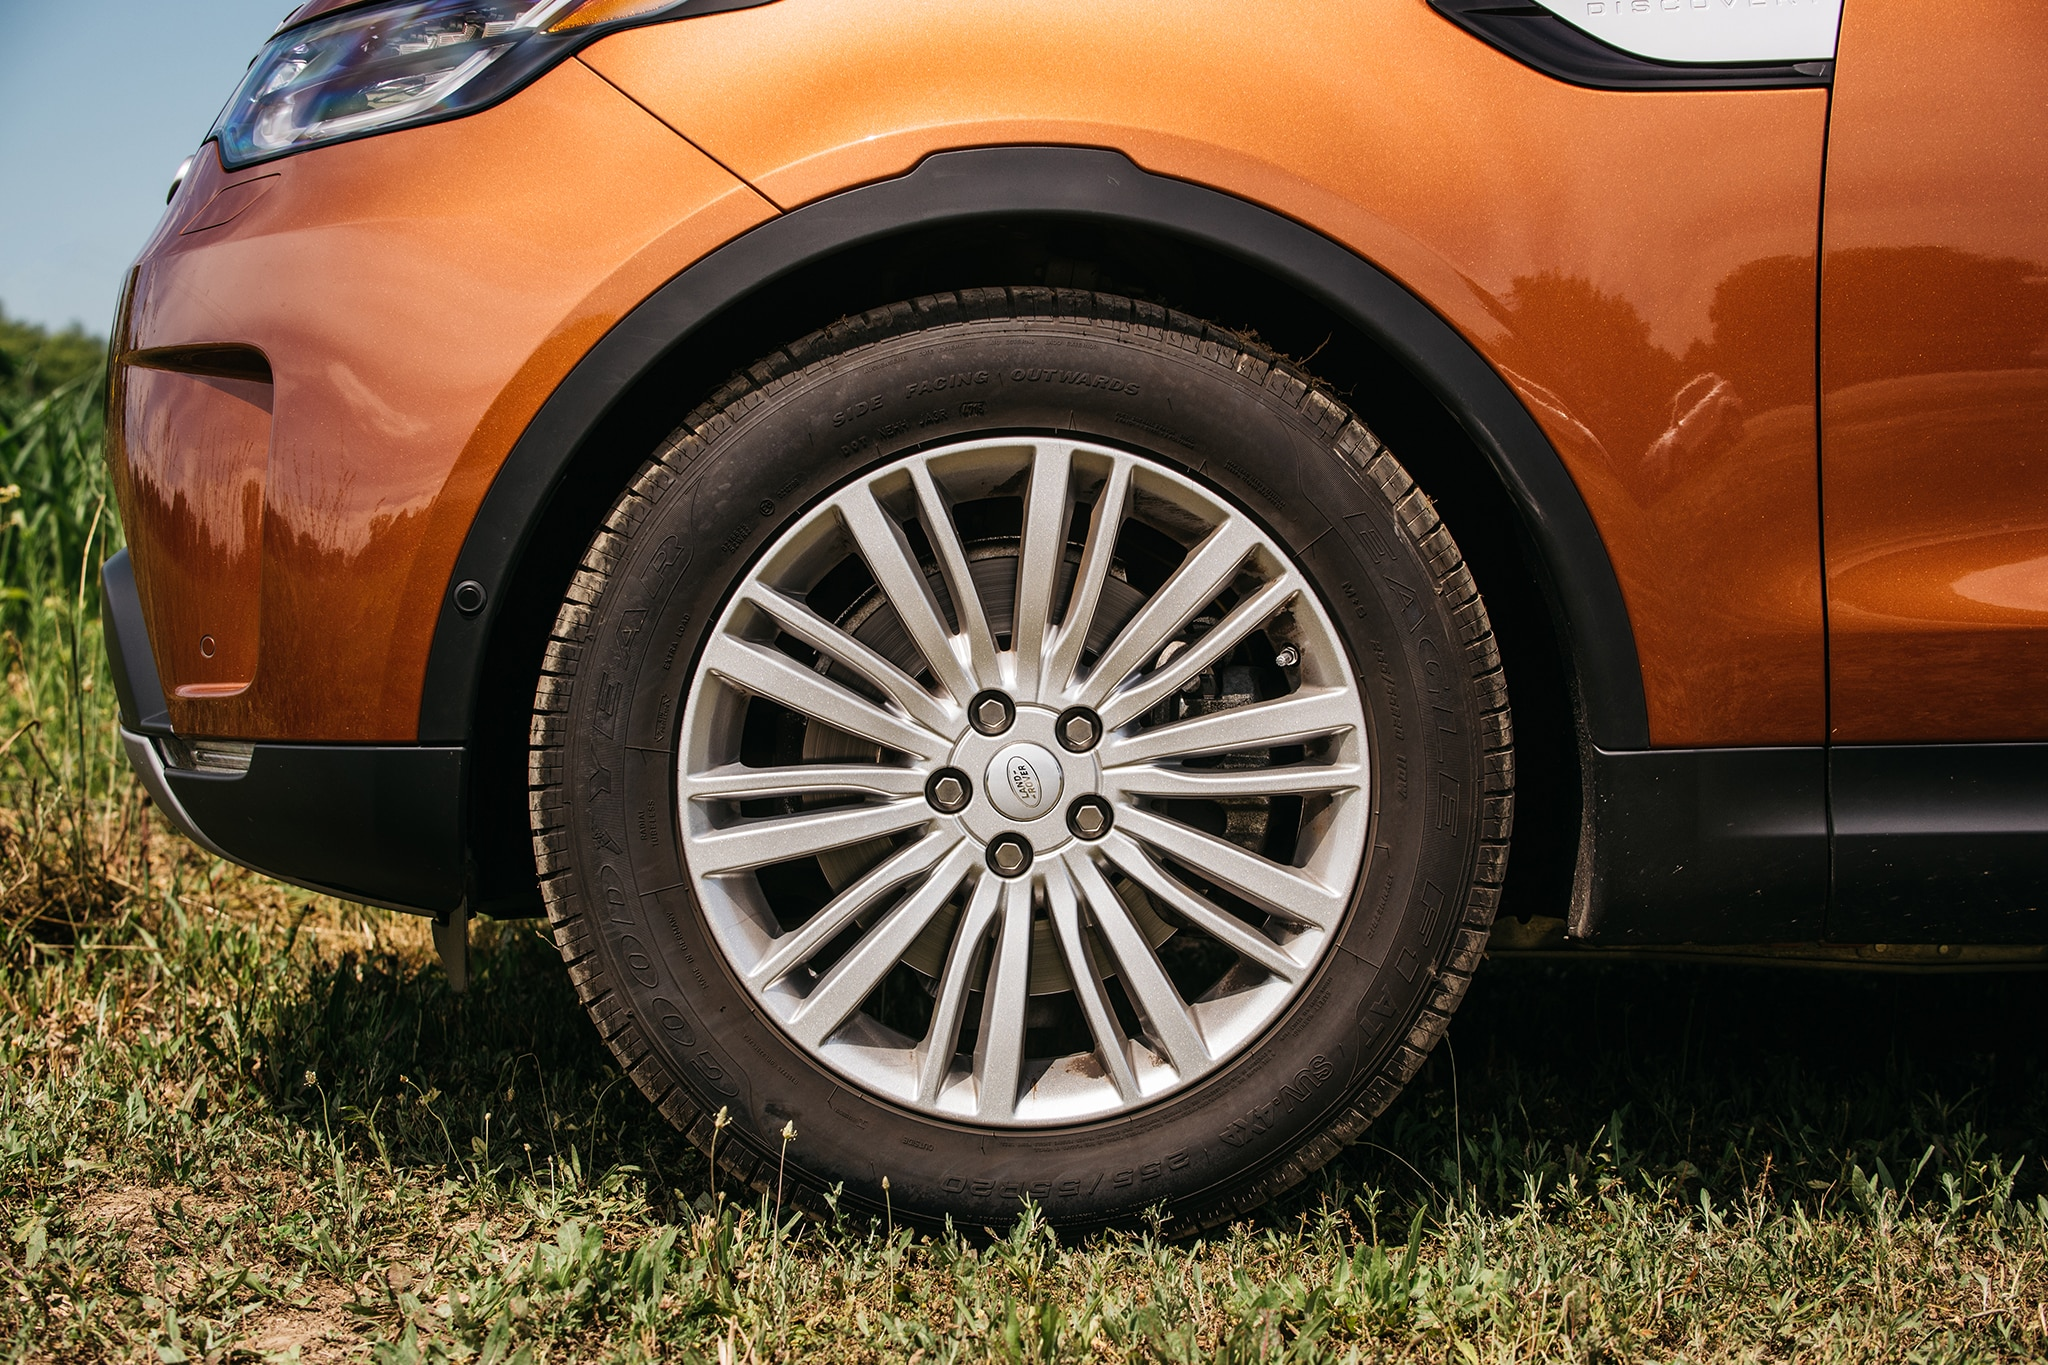 2017 Land Rover Discovery Td6 HSE Wheel 03